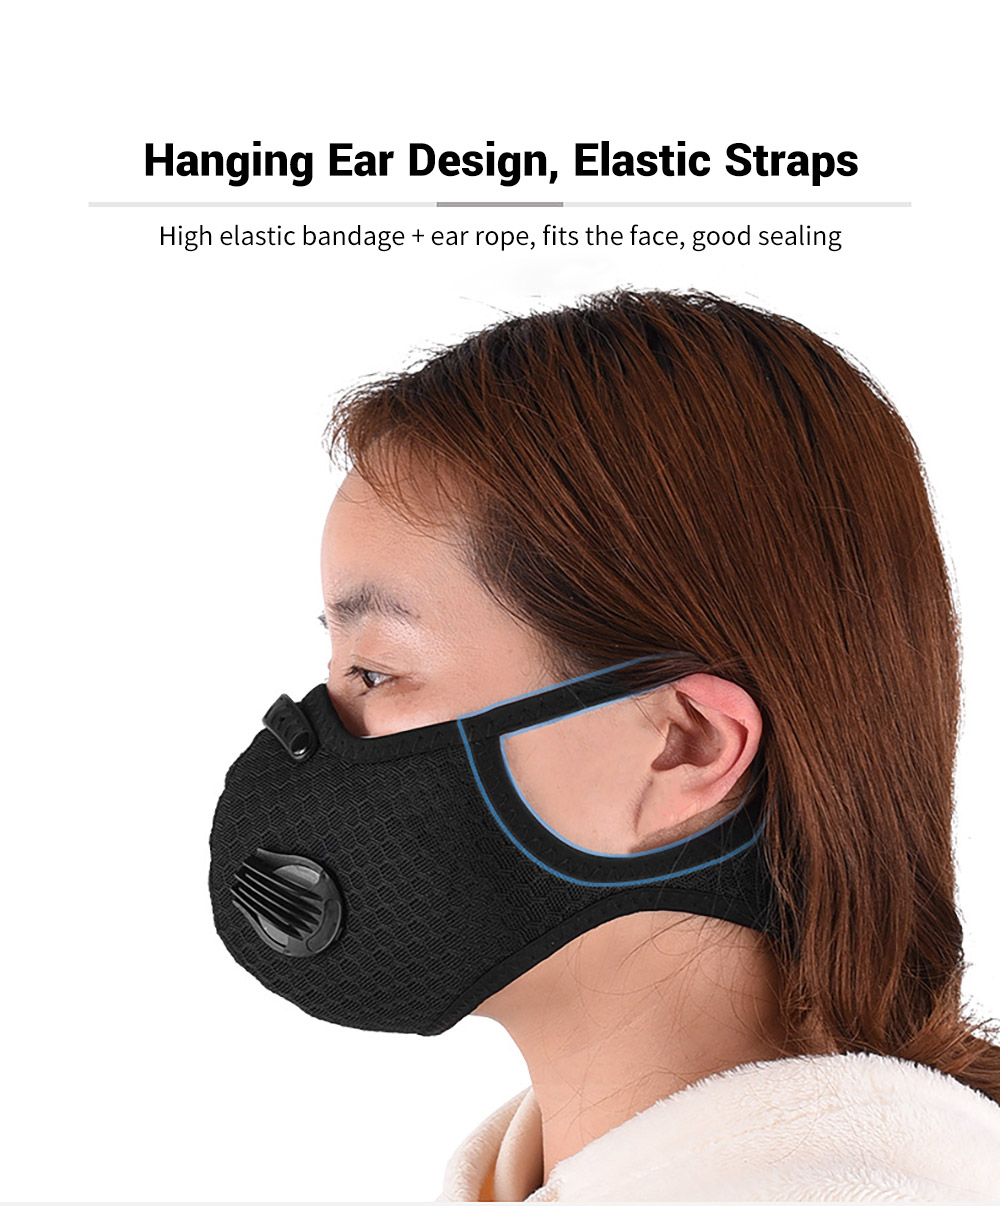 Bicycle Riding Mask Breathable Mesh Cycling Face Masks Hanging Ear Design, Elastic Straps